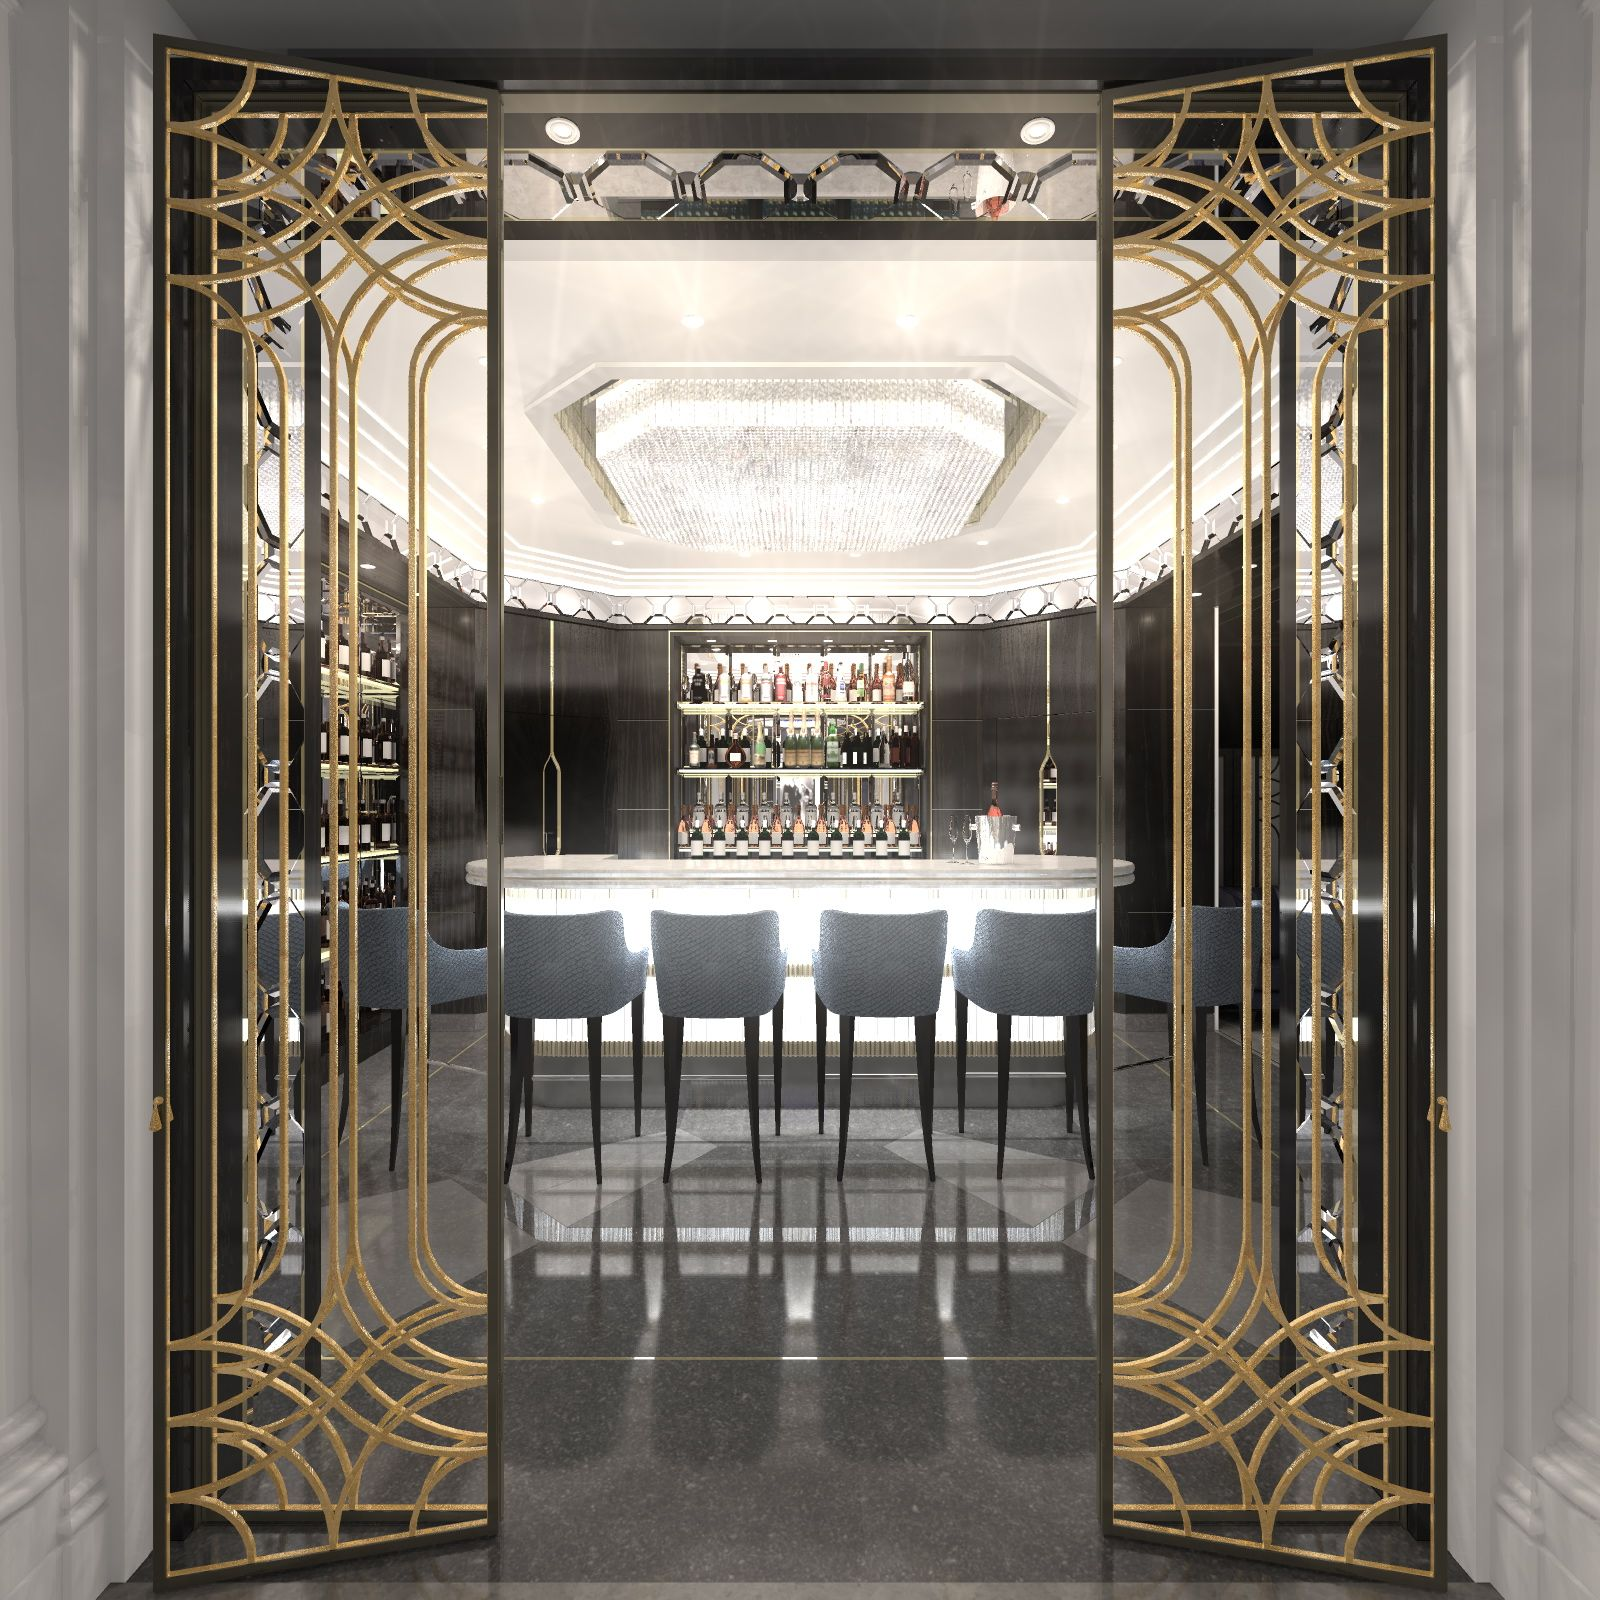 Wellesley hotel london furniture interior pinterest art